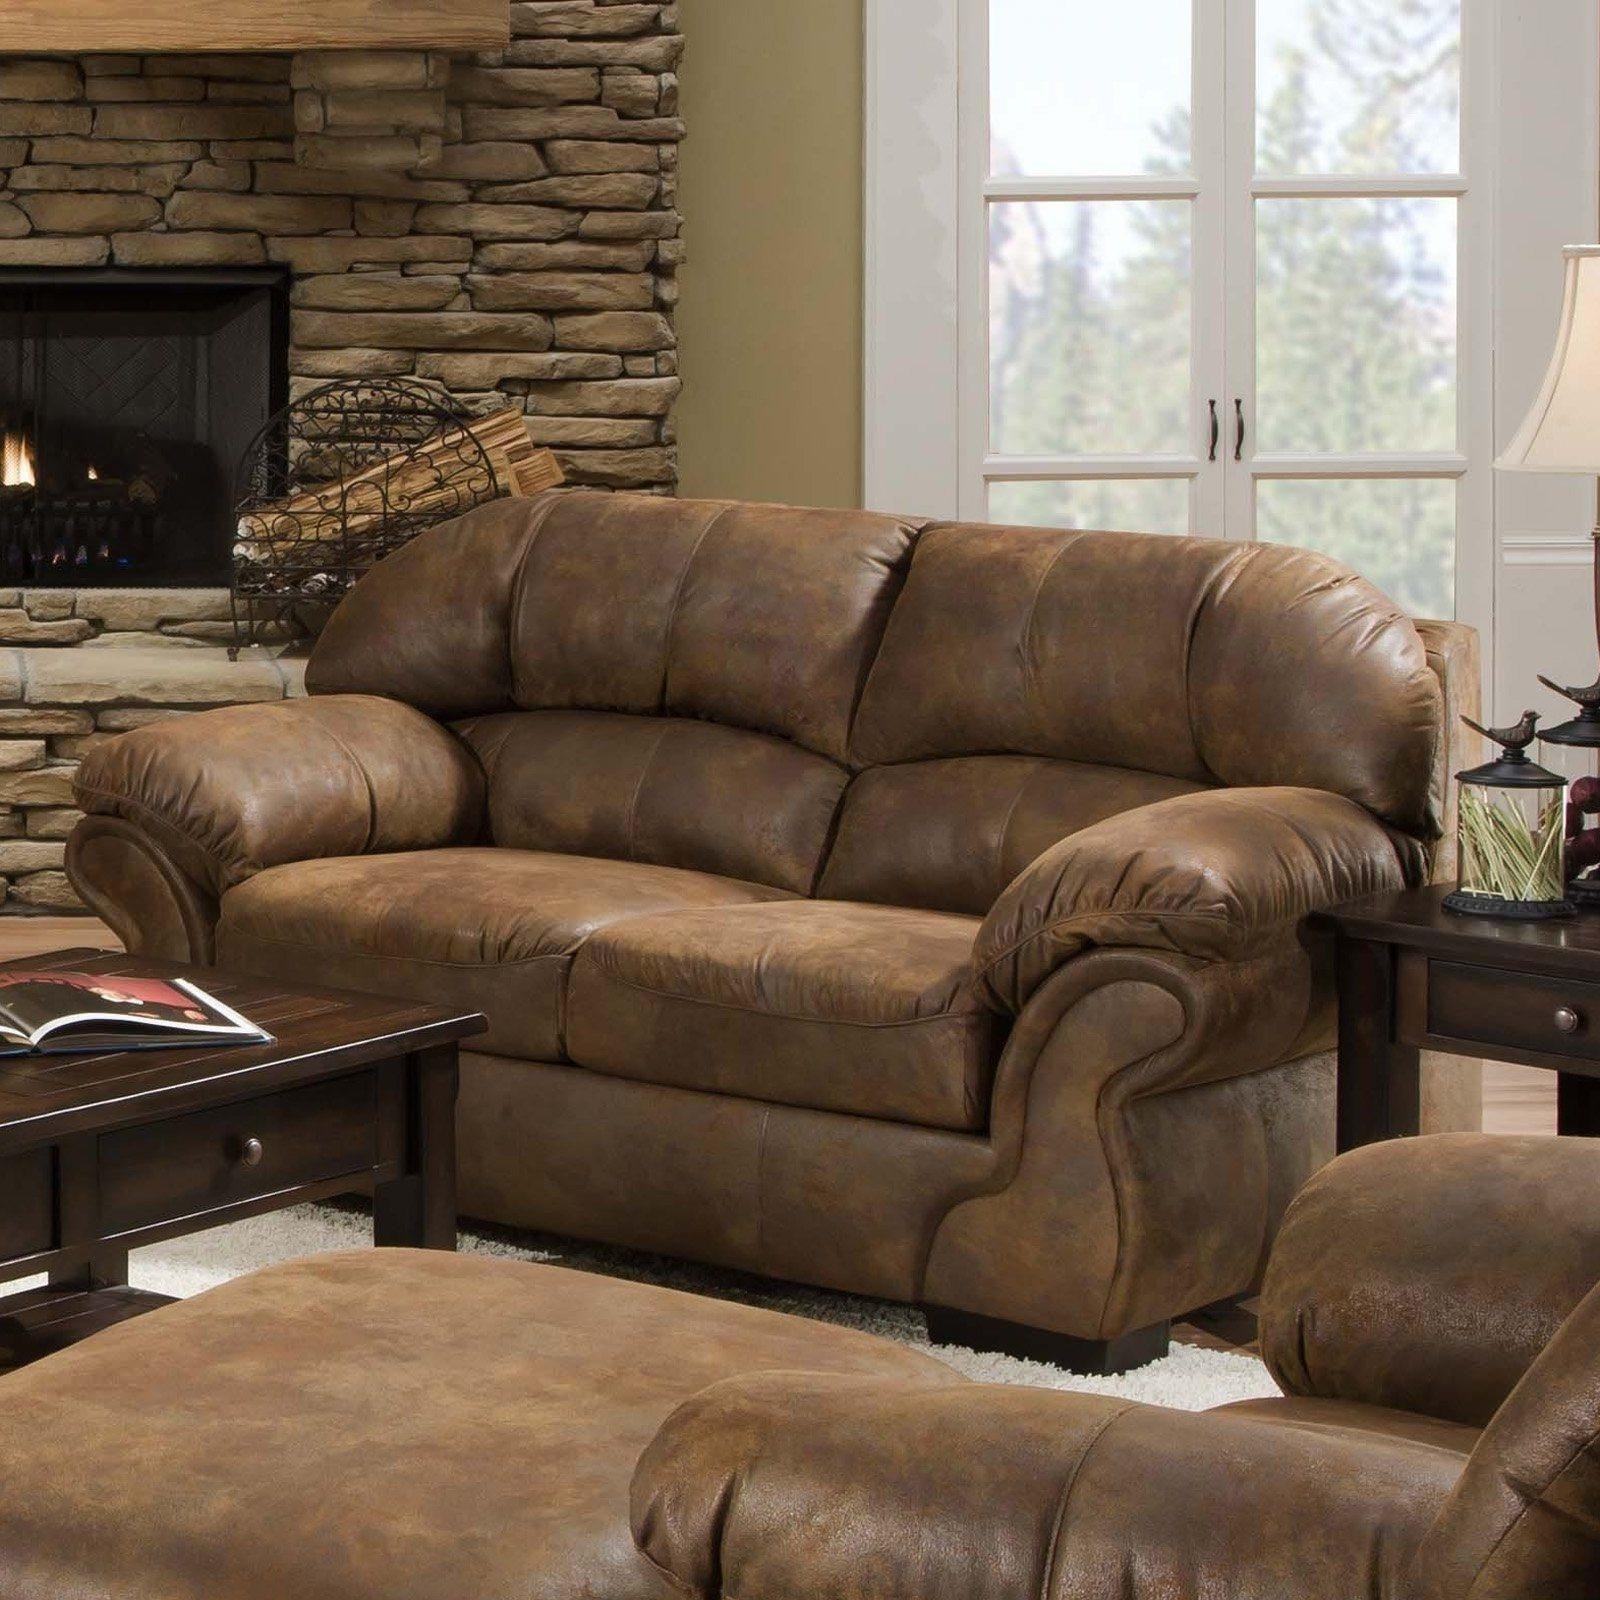 Living Room Ideas With Leather Furniture Intended For Warm With Regard To Bomber Leather Sofas (View 12 of 20)